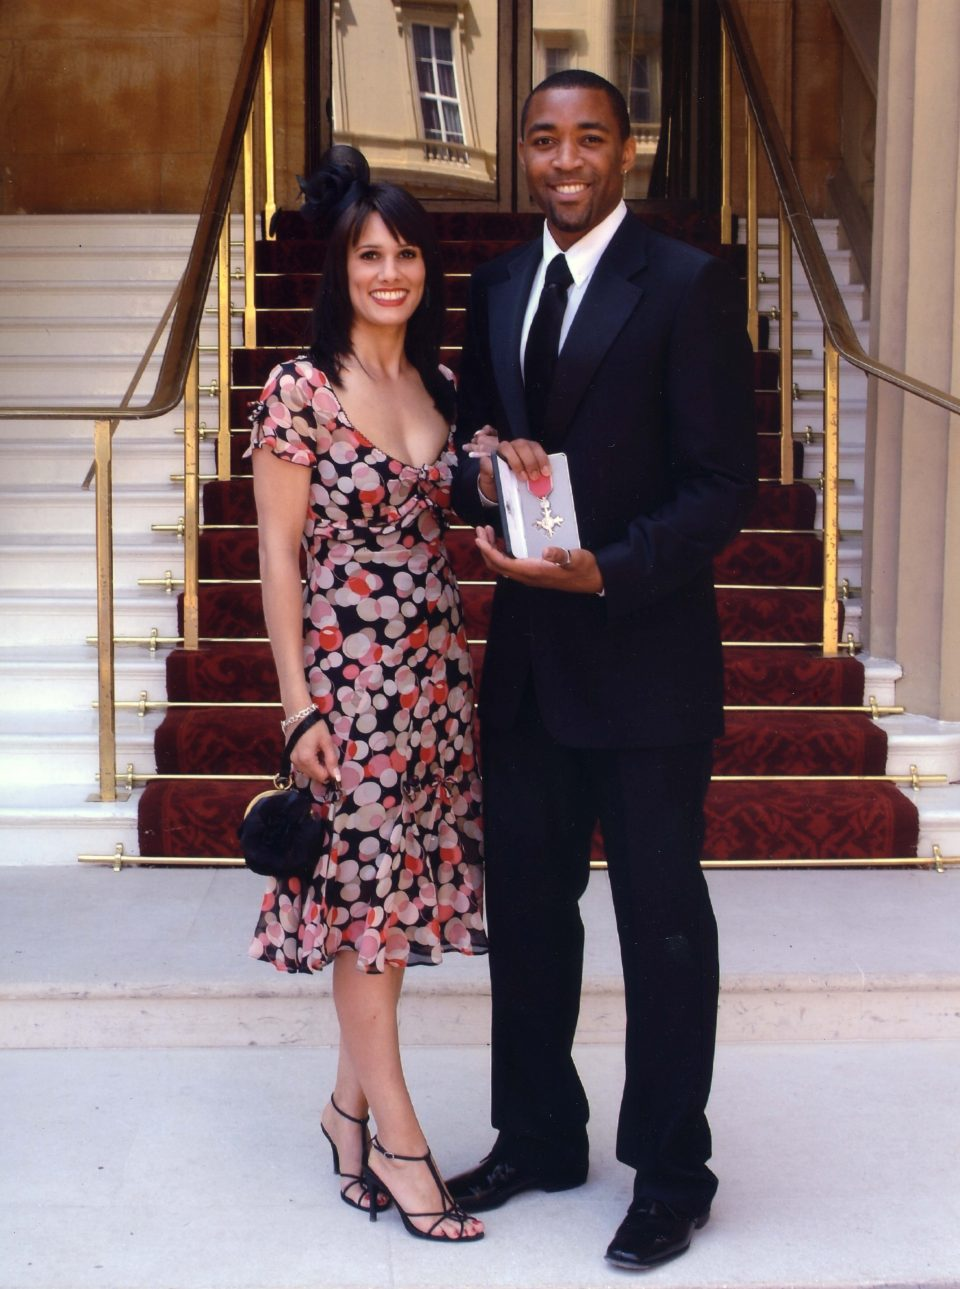 Campbell, pictured above with wife Clair, received the MBE in 2005 for his part in Team GB's Olympic gold-winning men's 4 x 100m relay team the previous summer